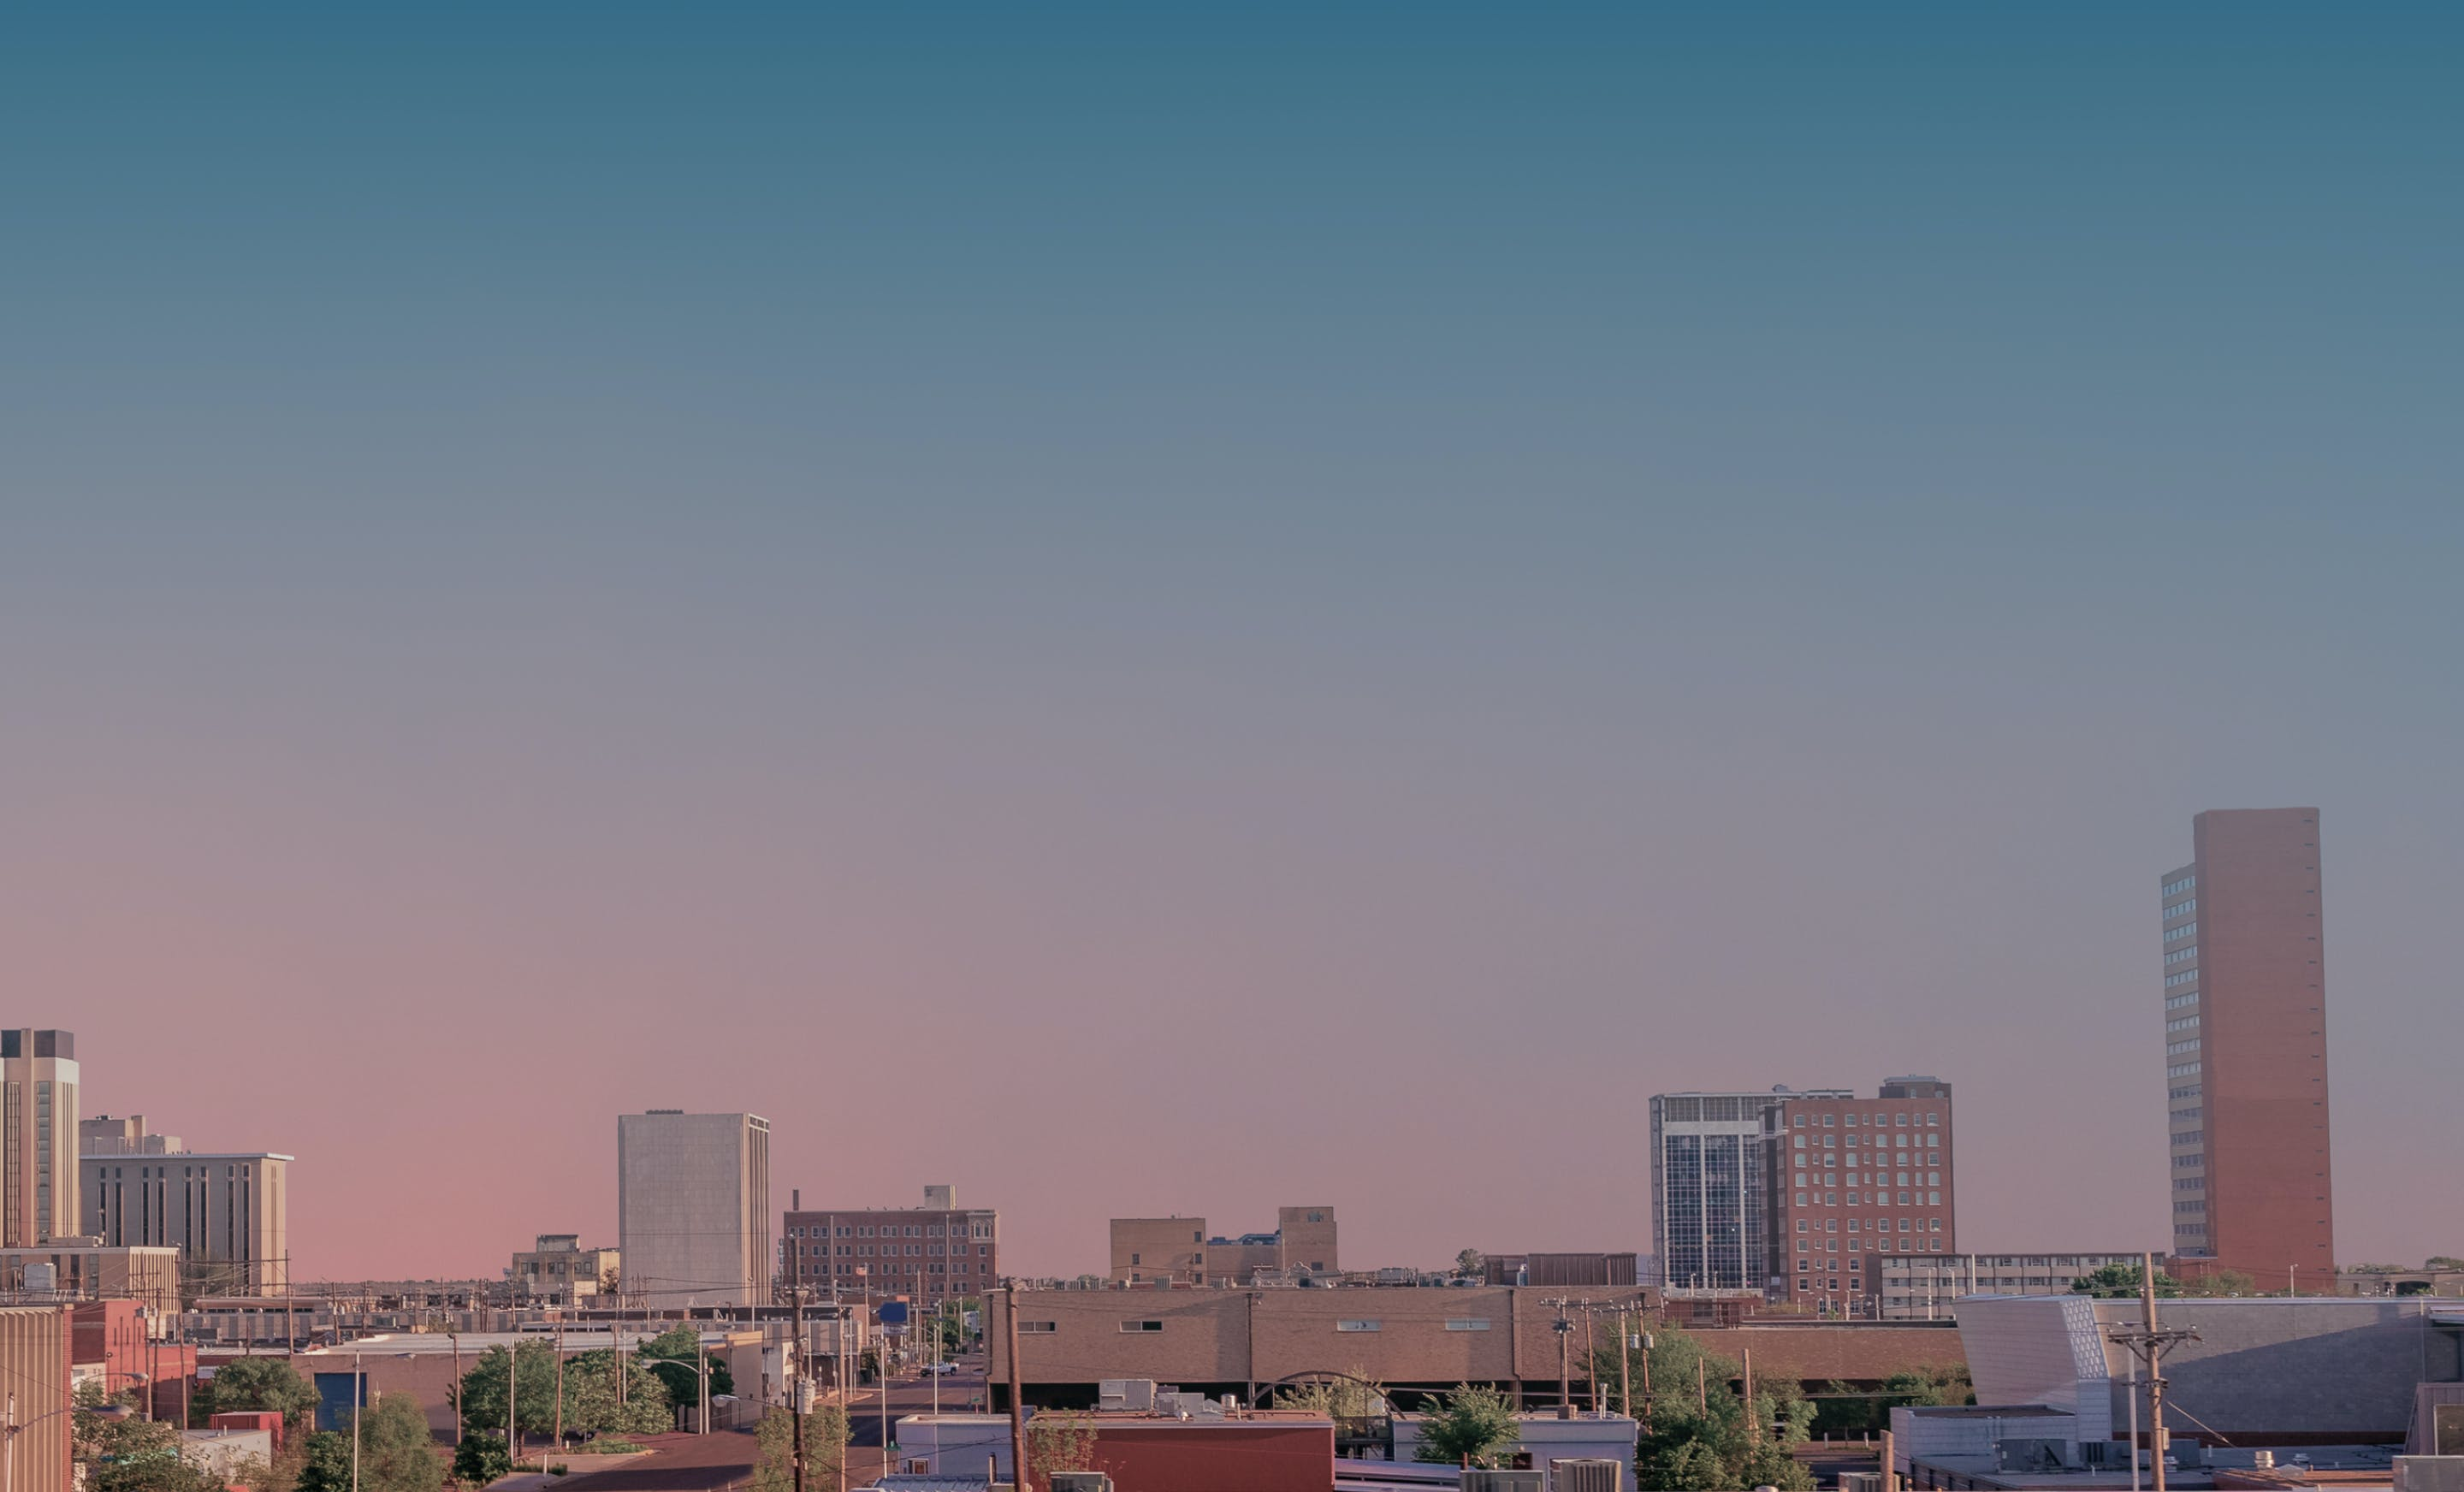 Downtown Lubbock The place to be